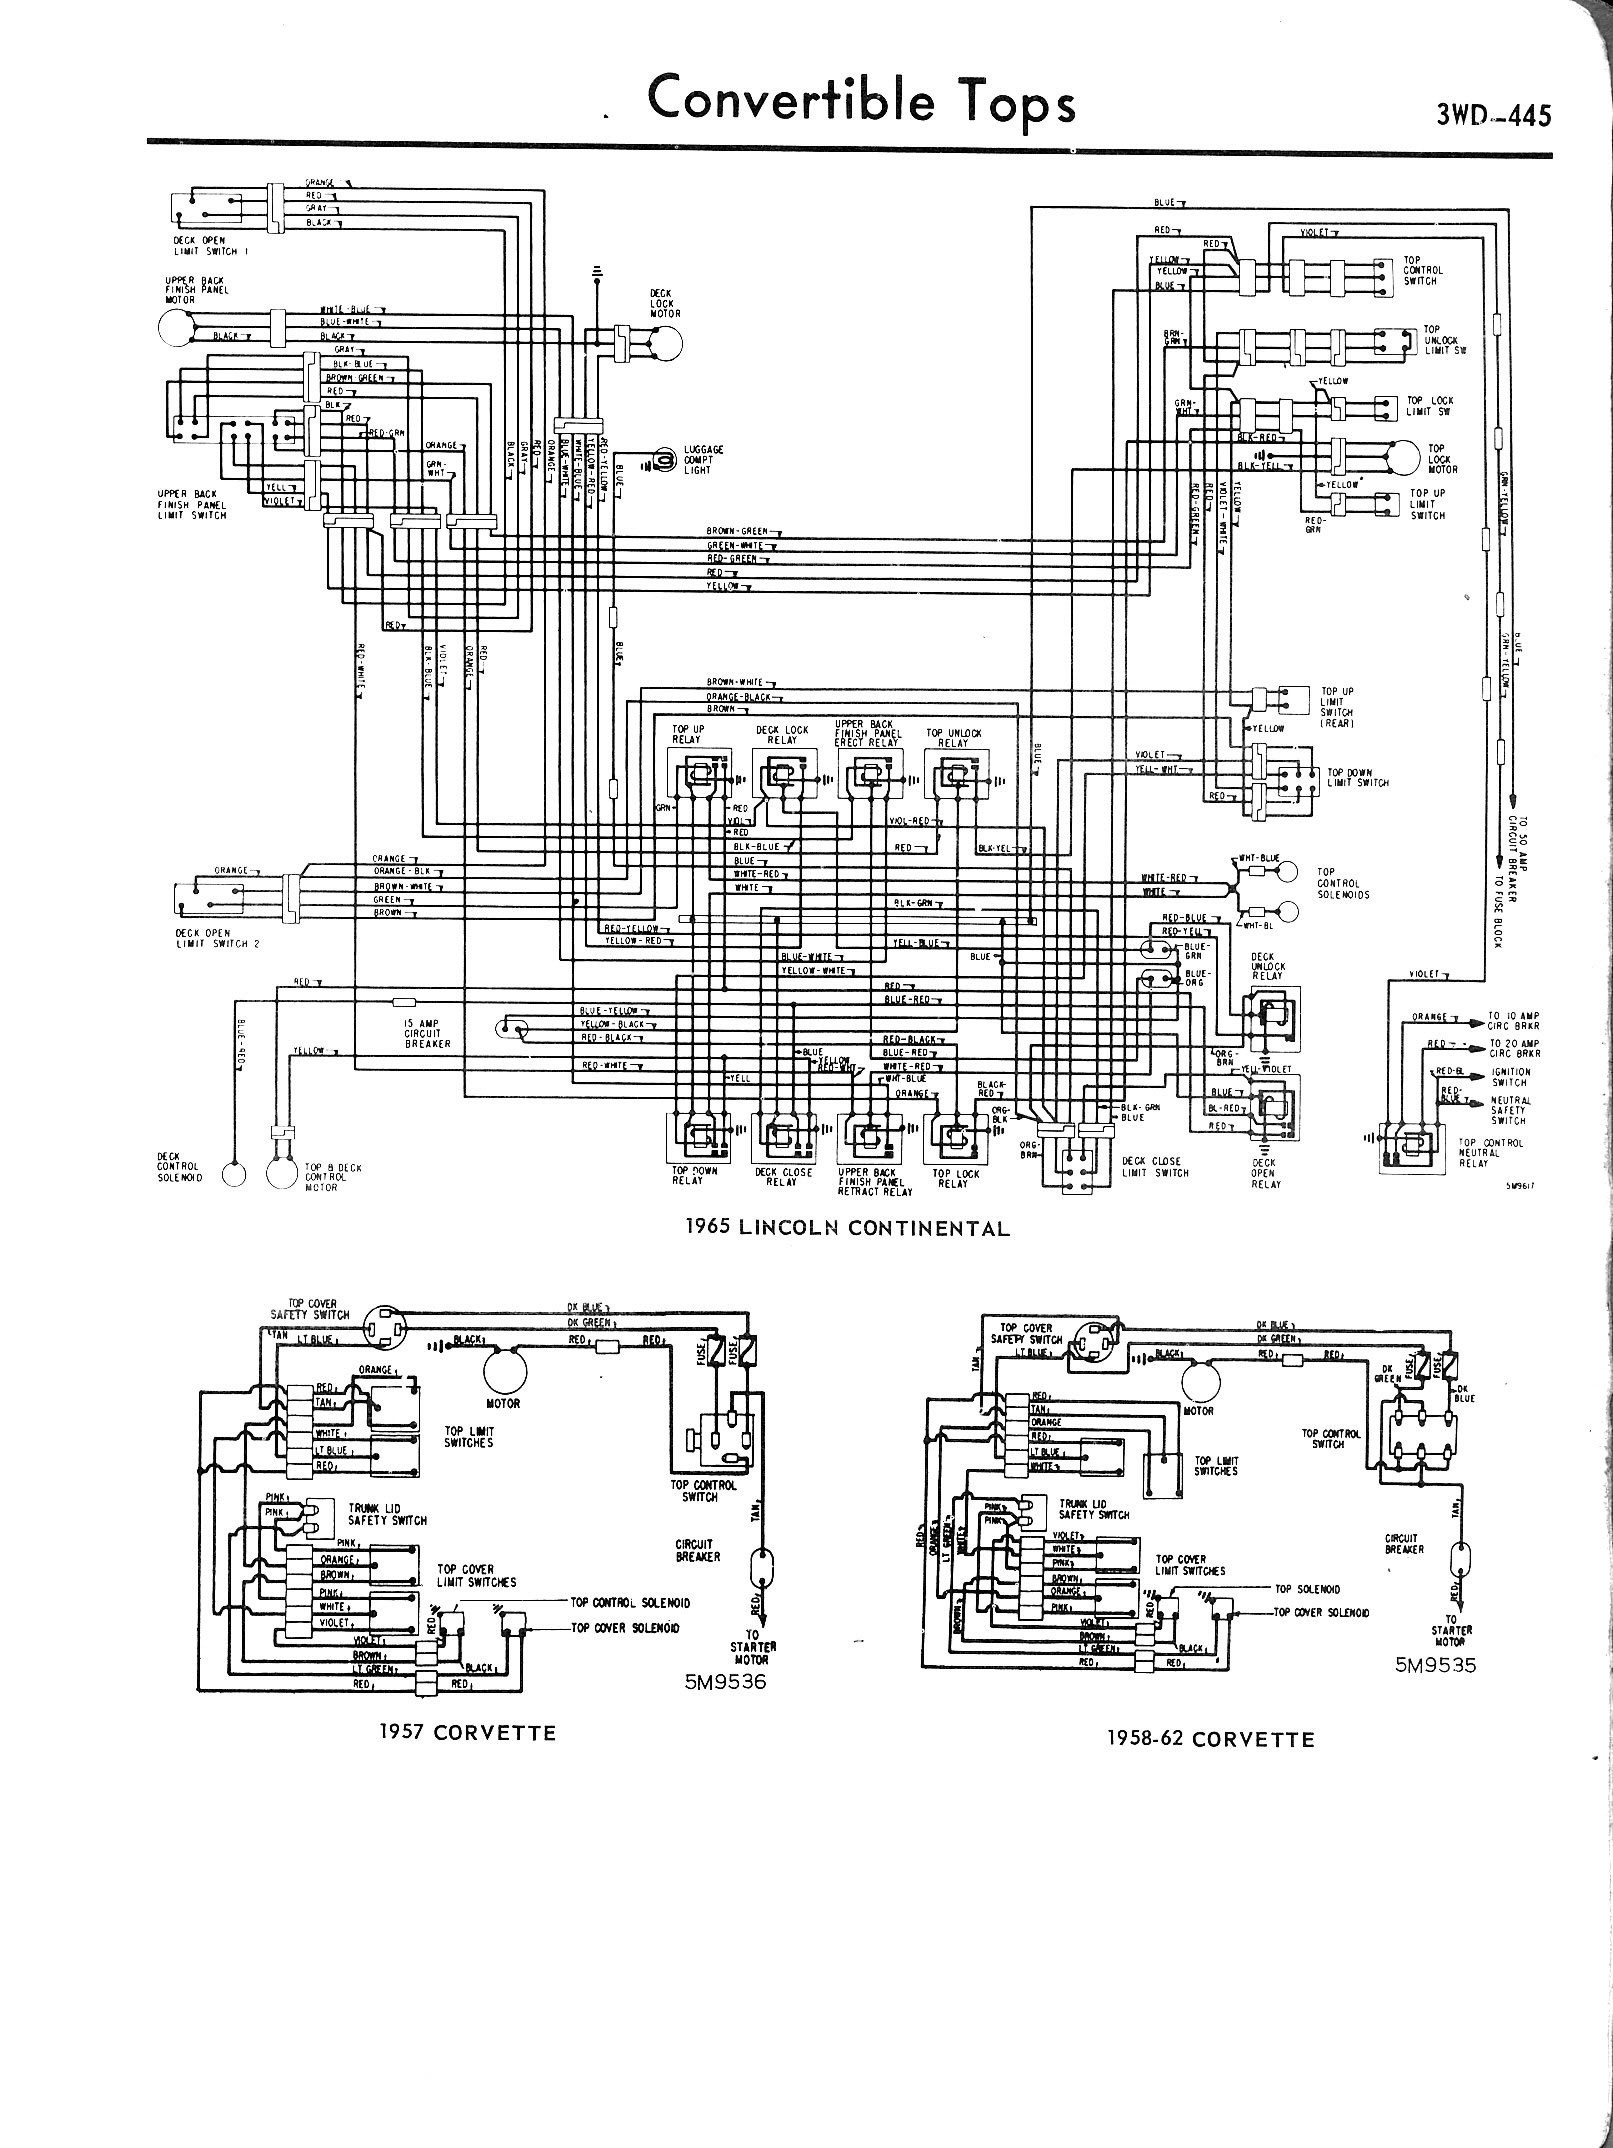 57 chevy wiring harness for prints simple wiring diagrams rh 12 studio011 de 55 Willys Ignition Switch Wiring Diagram 55 Chevy Headlight Switch Diagram